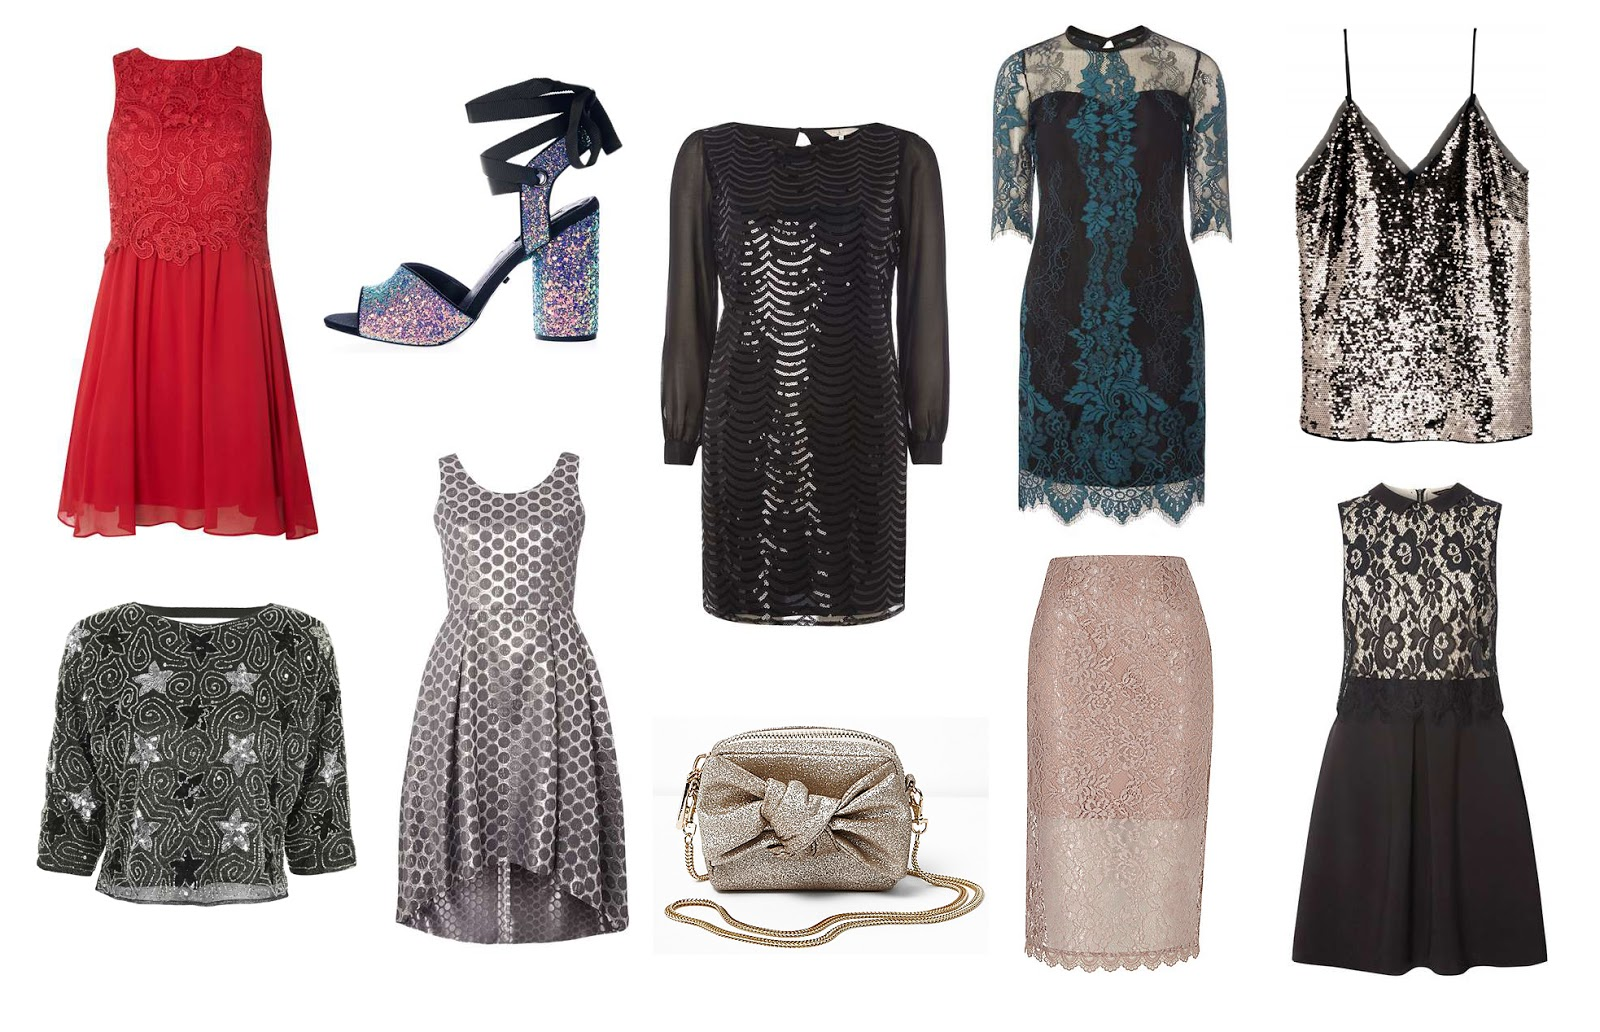 New Years Eve Outfit Ideas, Party Season, Outfit Ideas, Katie Kirk Loves, New Years Eve, Dorothy Perkins, River Island, Topshop, H&M, Partywear, Fashion Blogger, UK Fashion Blogger, Outfit Of The Day, Style Blogger, Outfit Photoshoot, UK Blogger, Party Dresses, Party Outfit Inspiration